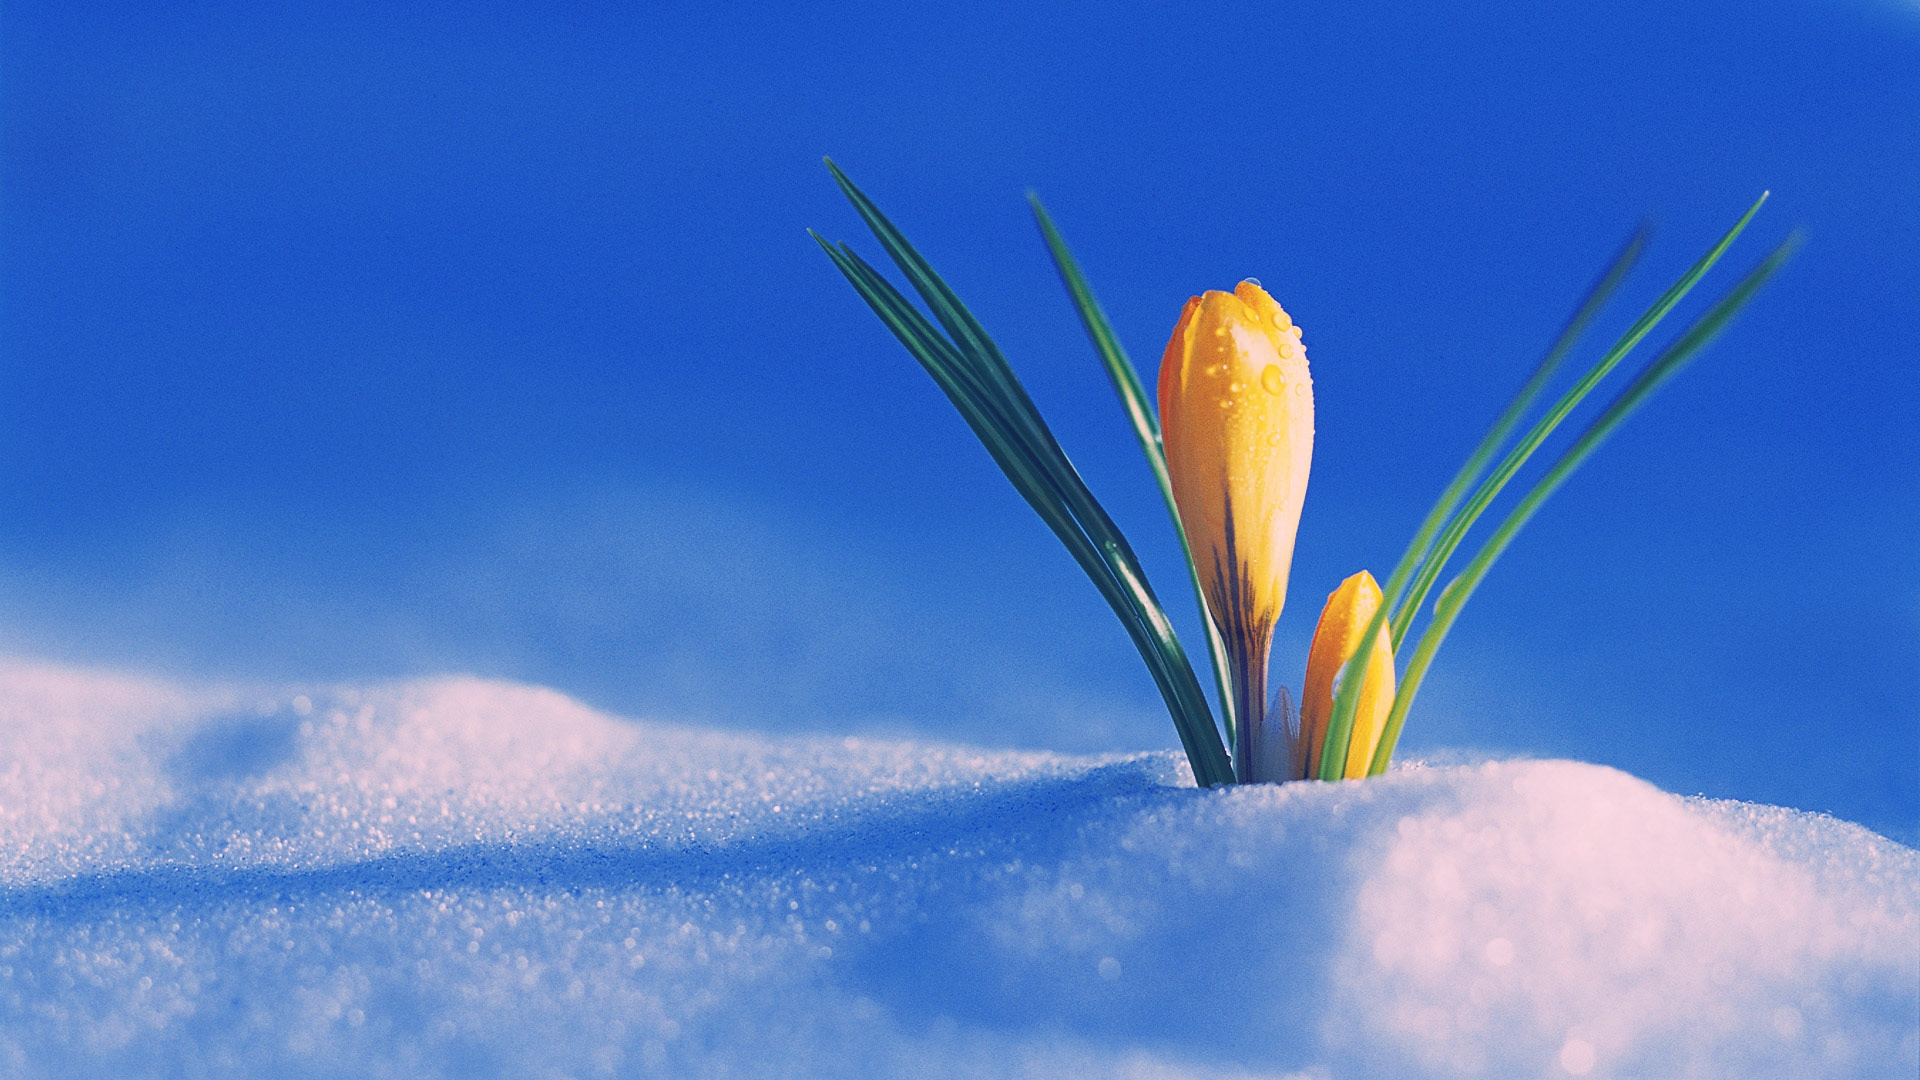 the first day of spring wallpaper for 1920x1080 hdtv 1080p 607 15 1920x1080